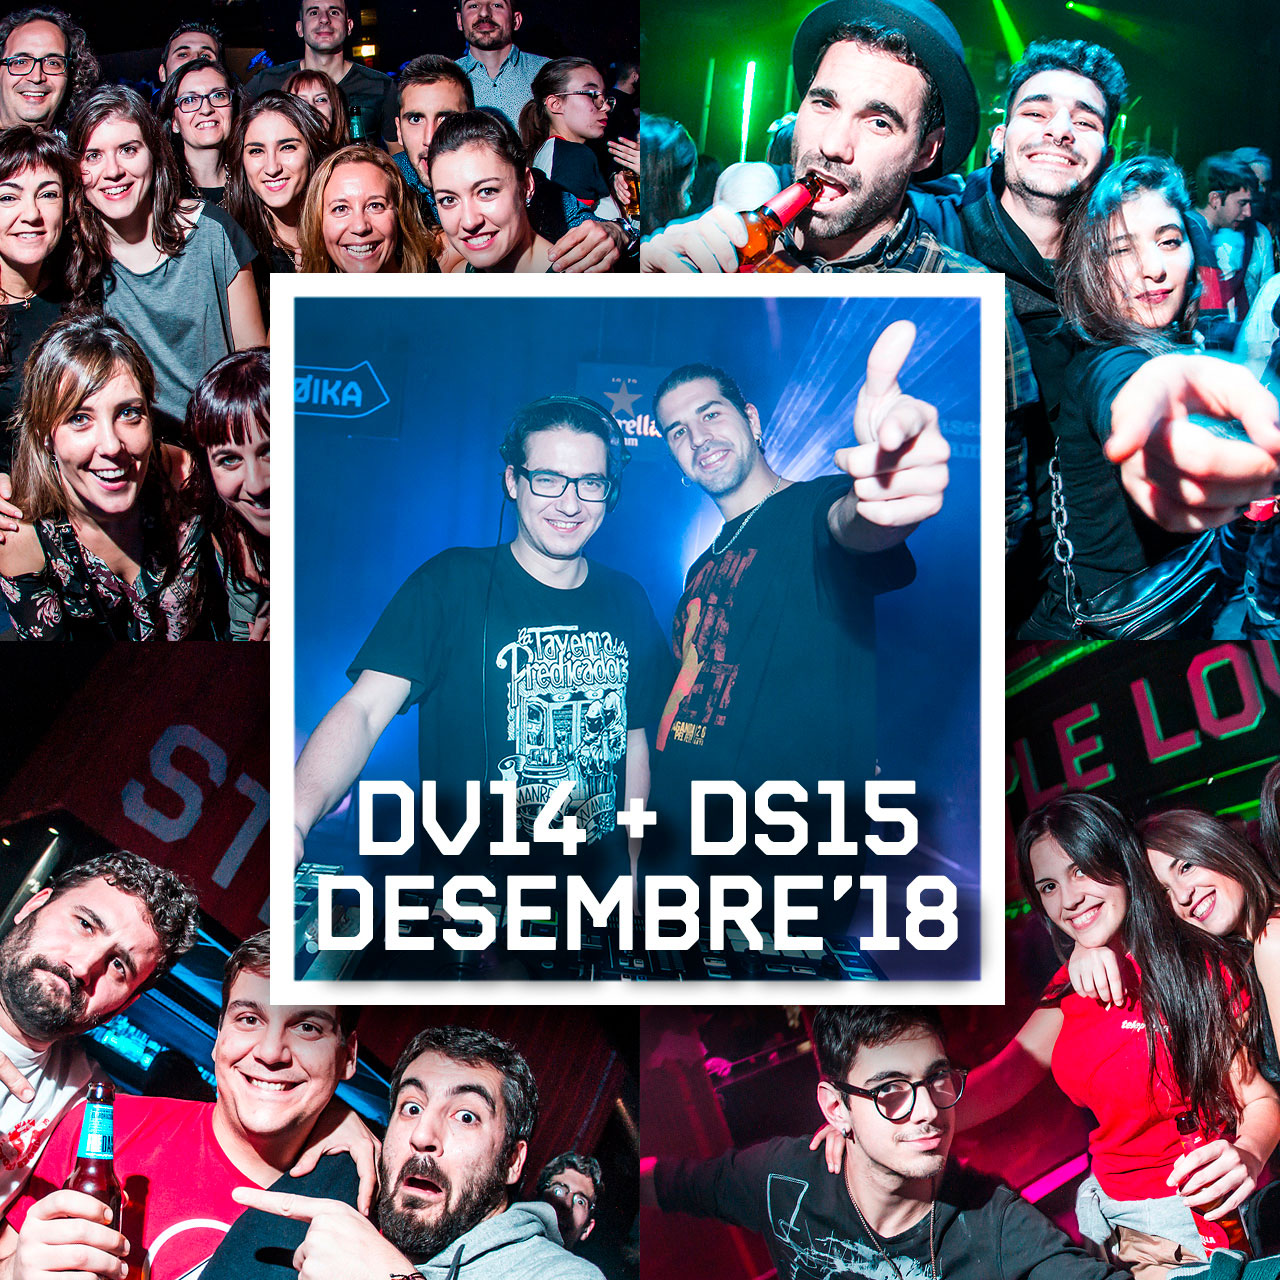 DV14 +DS15 DES'18 // STROIKA SESSIONS